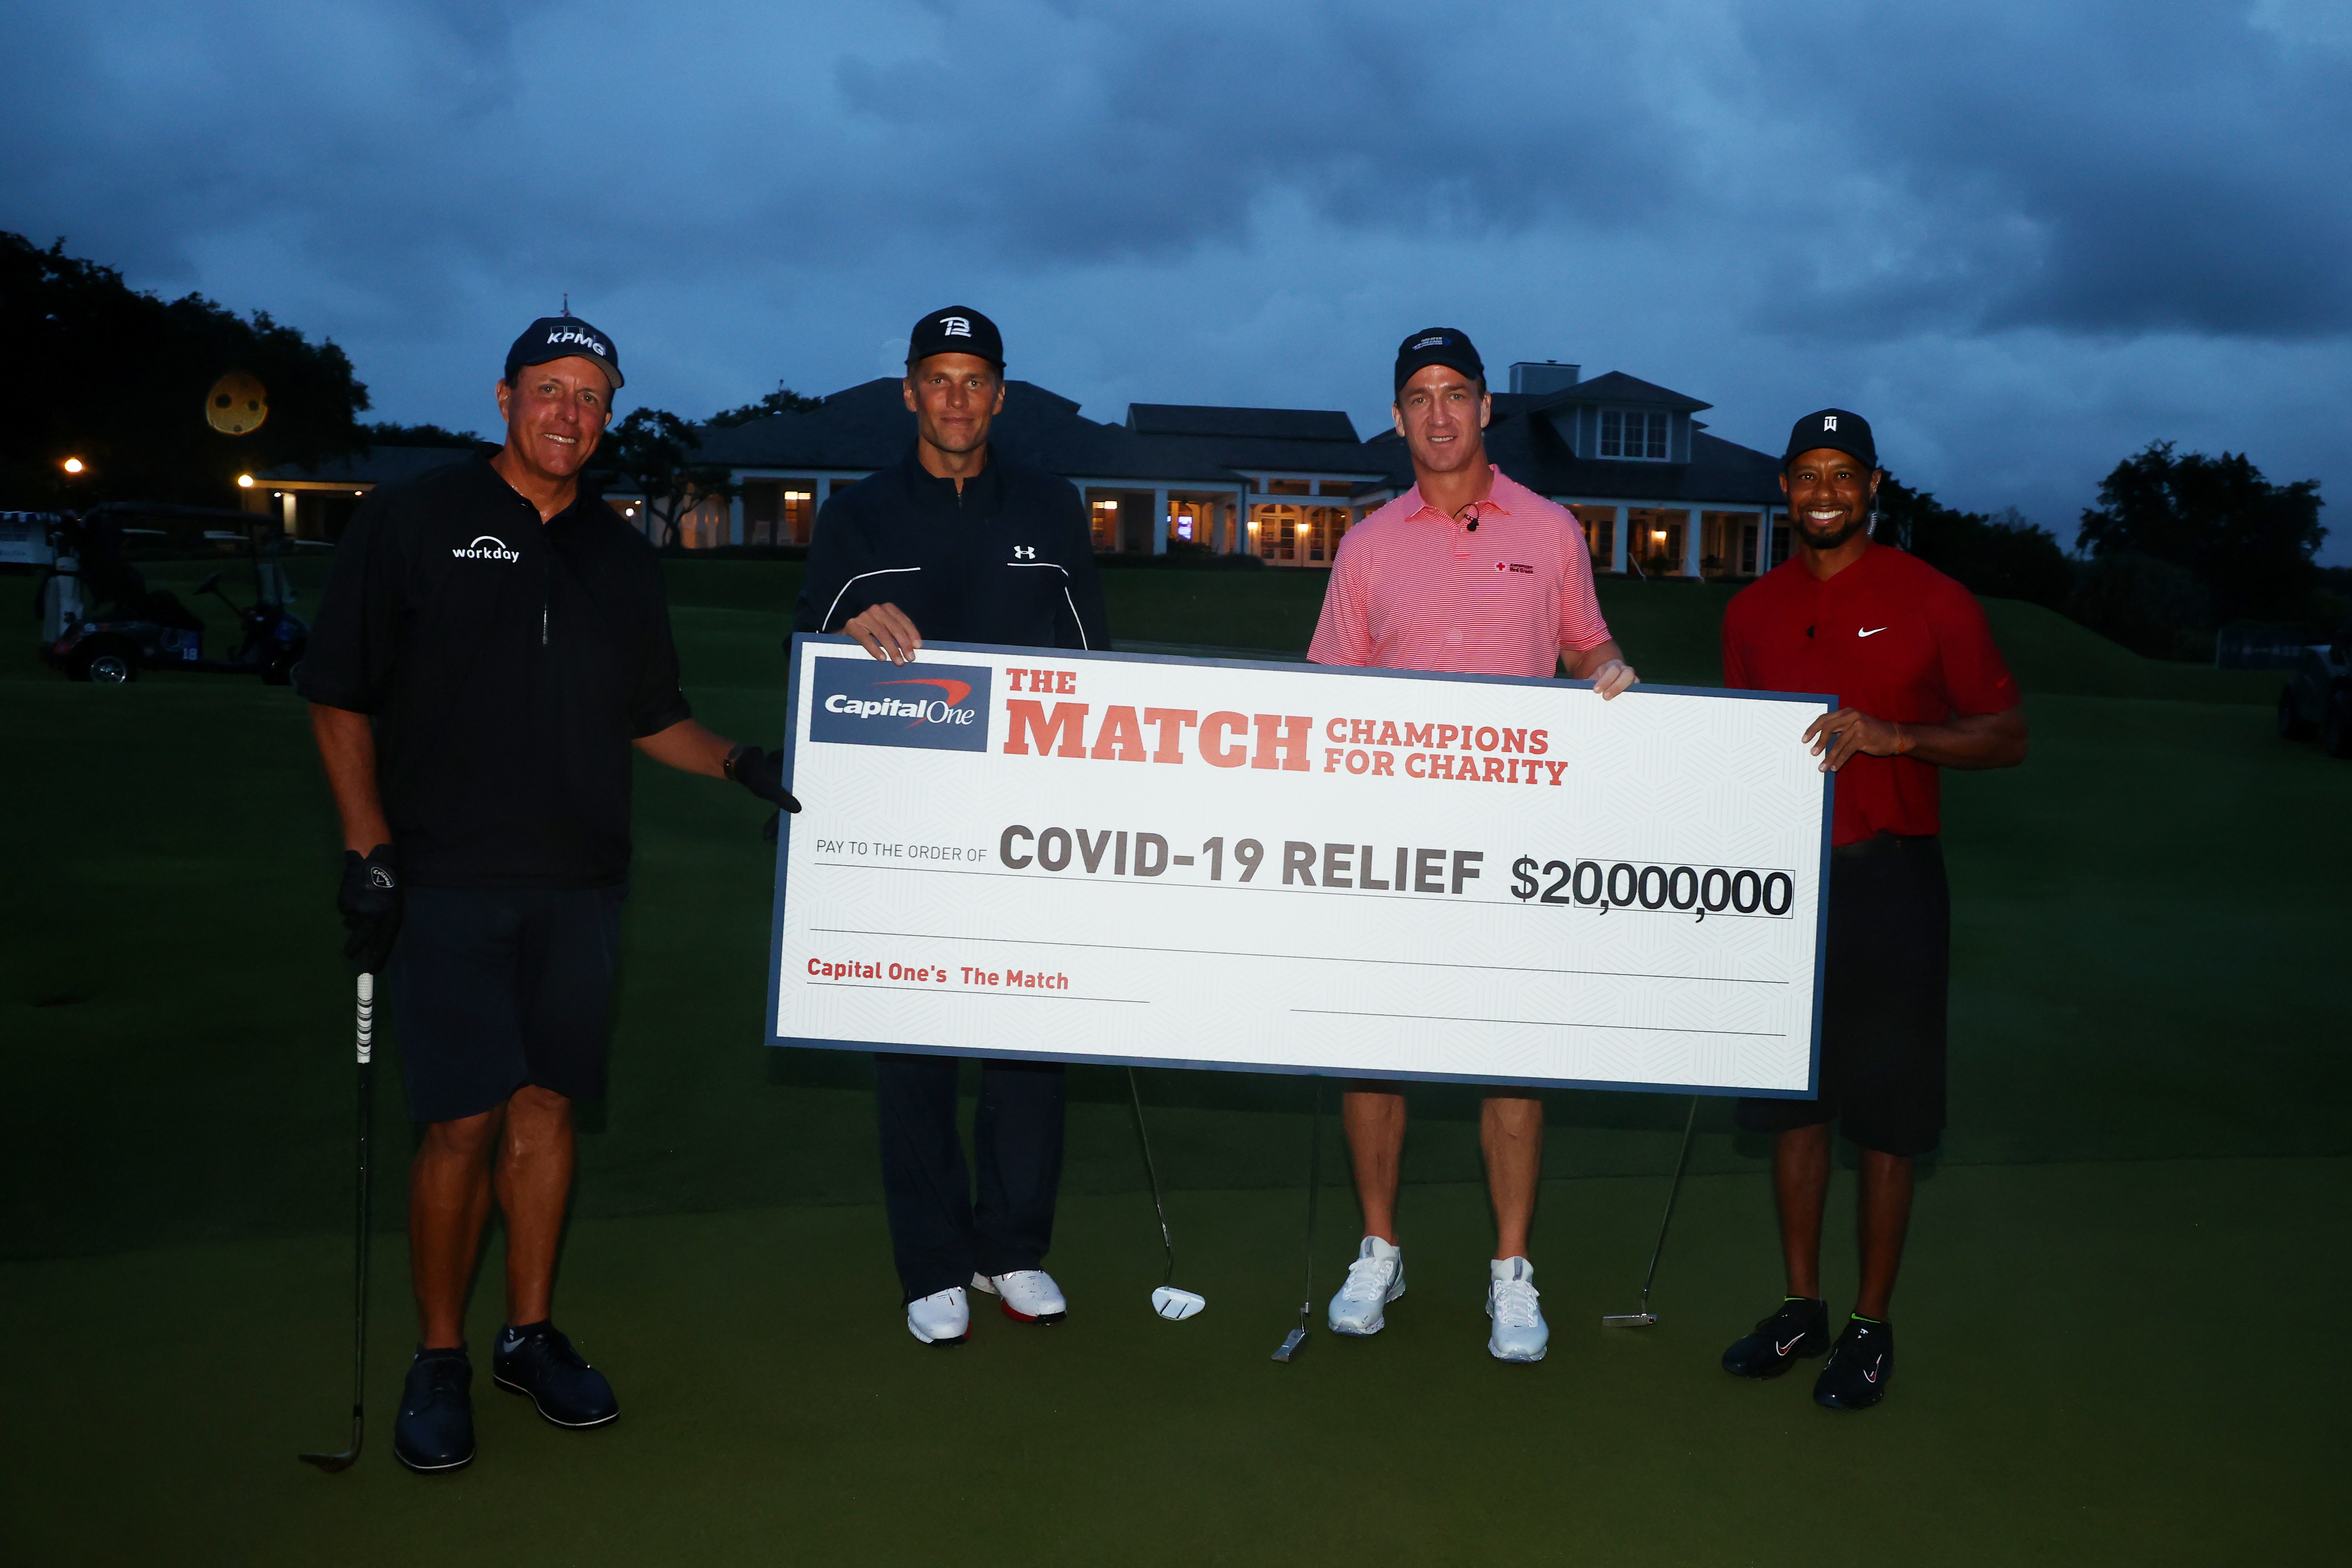 Woods, Manning Win Over Brady, Mickelson in Golf Charity Match as Good as Real Thing